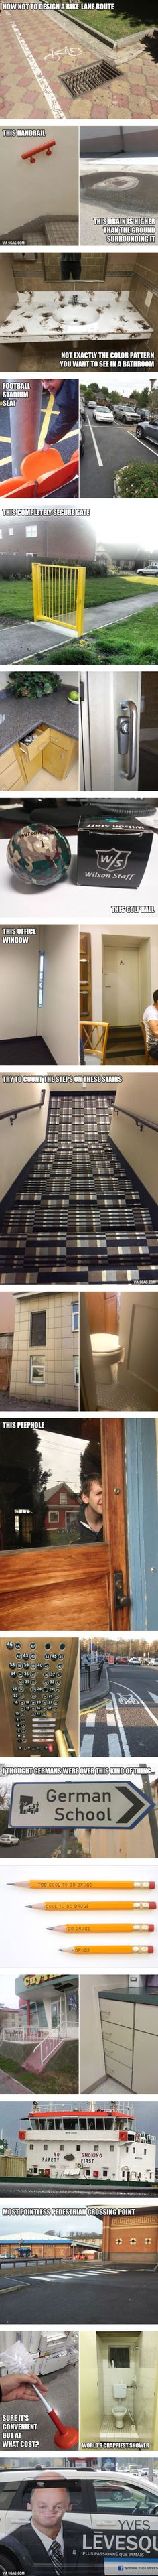 Brilliant Examples of Terrible Design. Rotfl